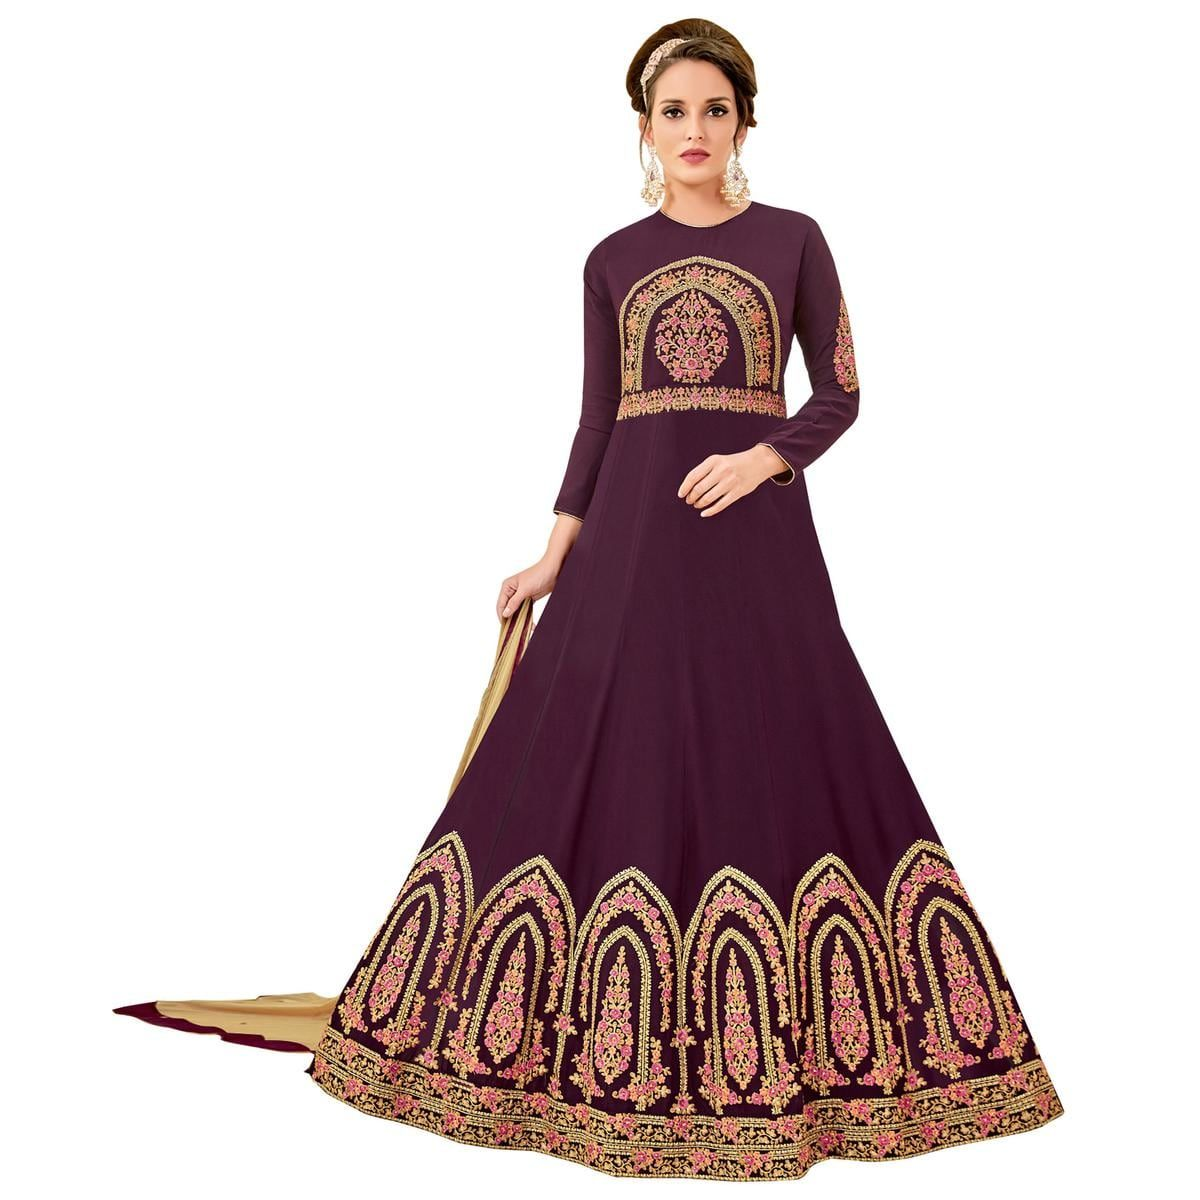 6301356f82 Buy Beautiful Beige Colored Party Wear Embroidered Georgette Anarkali Suit  for womens online India, Best Prices, Reviews - Peachmode